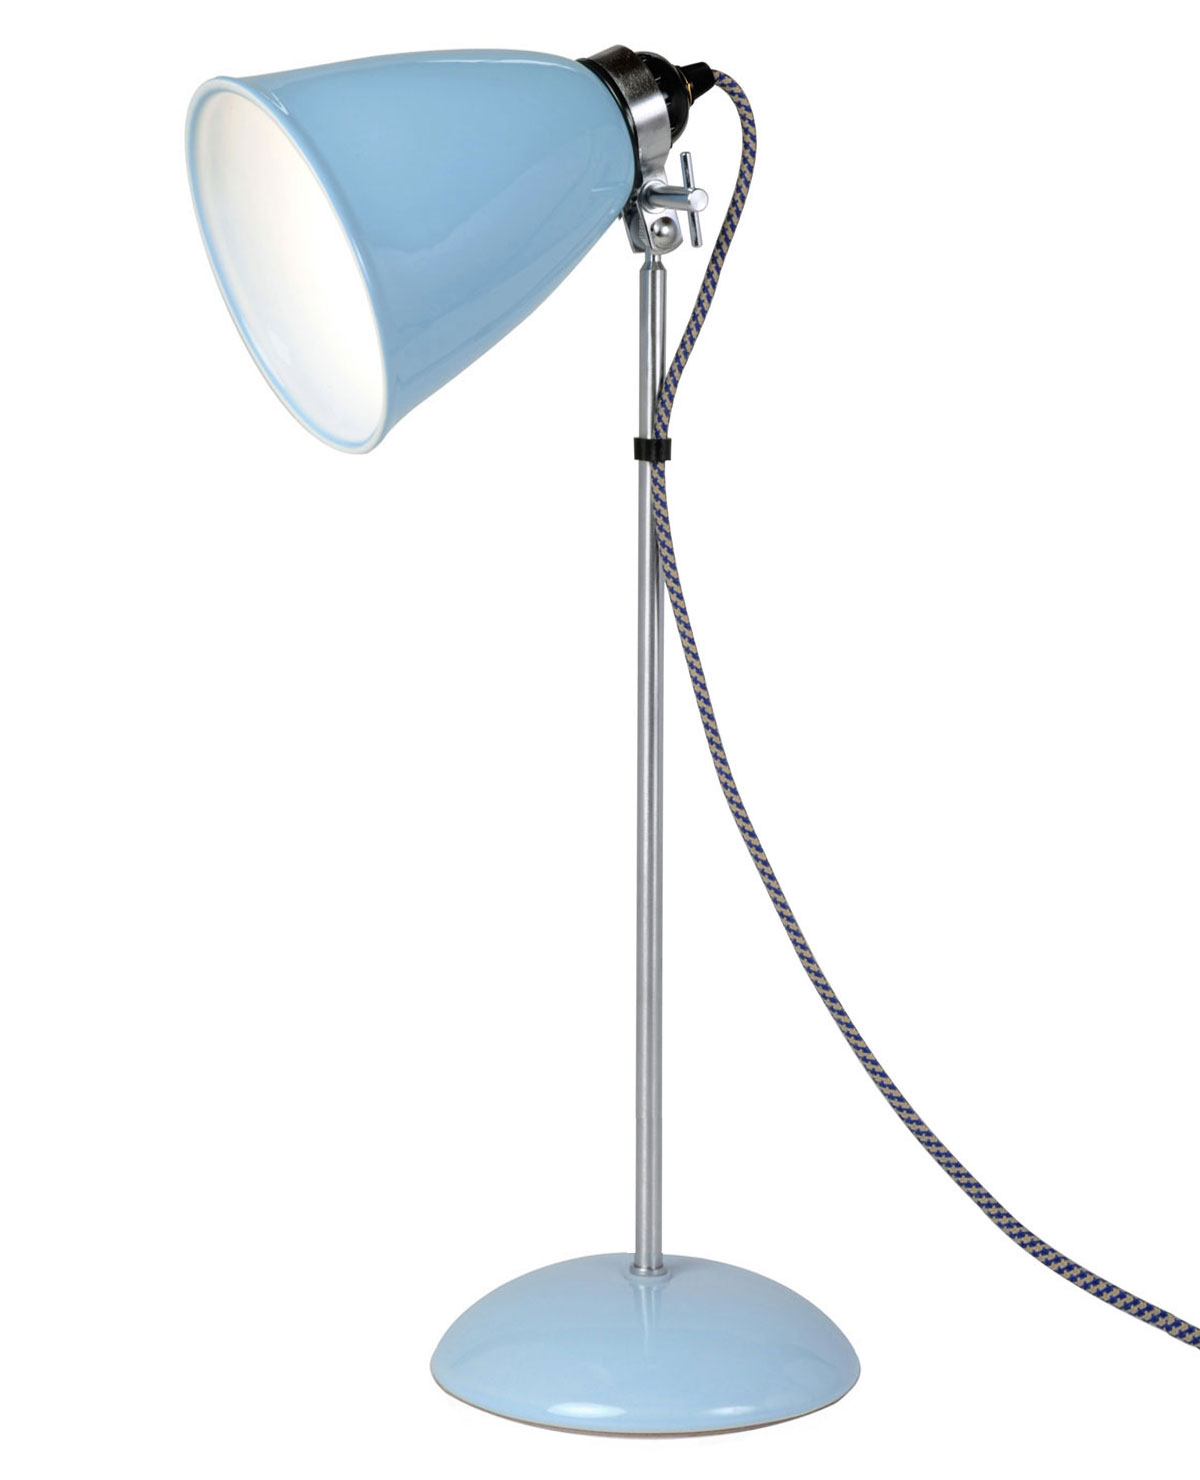 HECTOR DOME | Table Light, blue